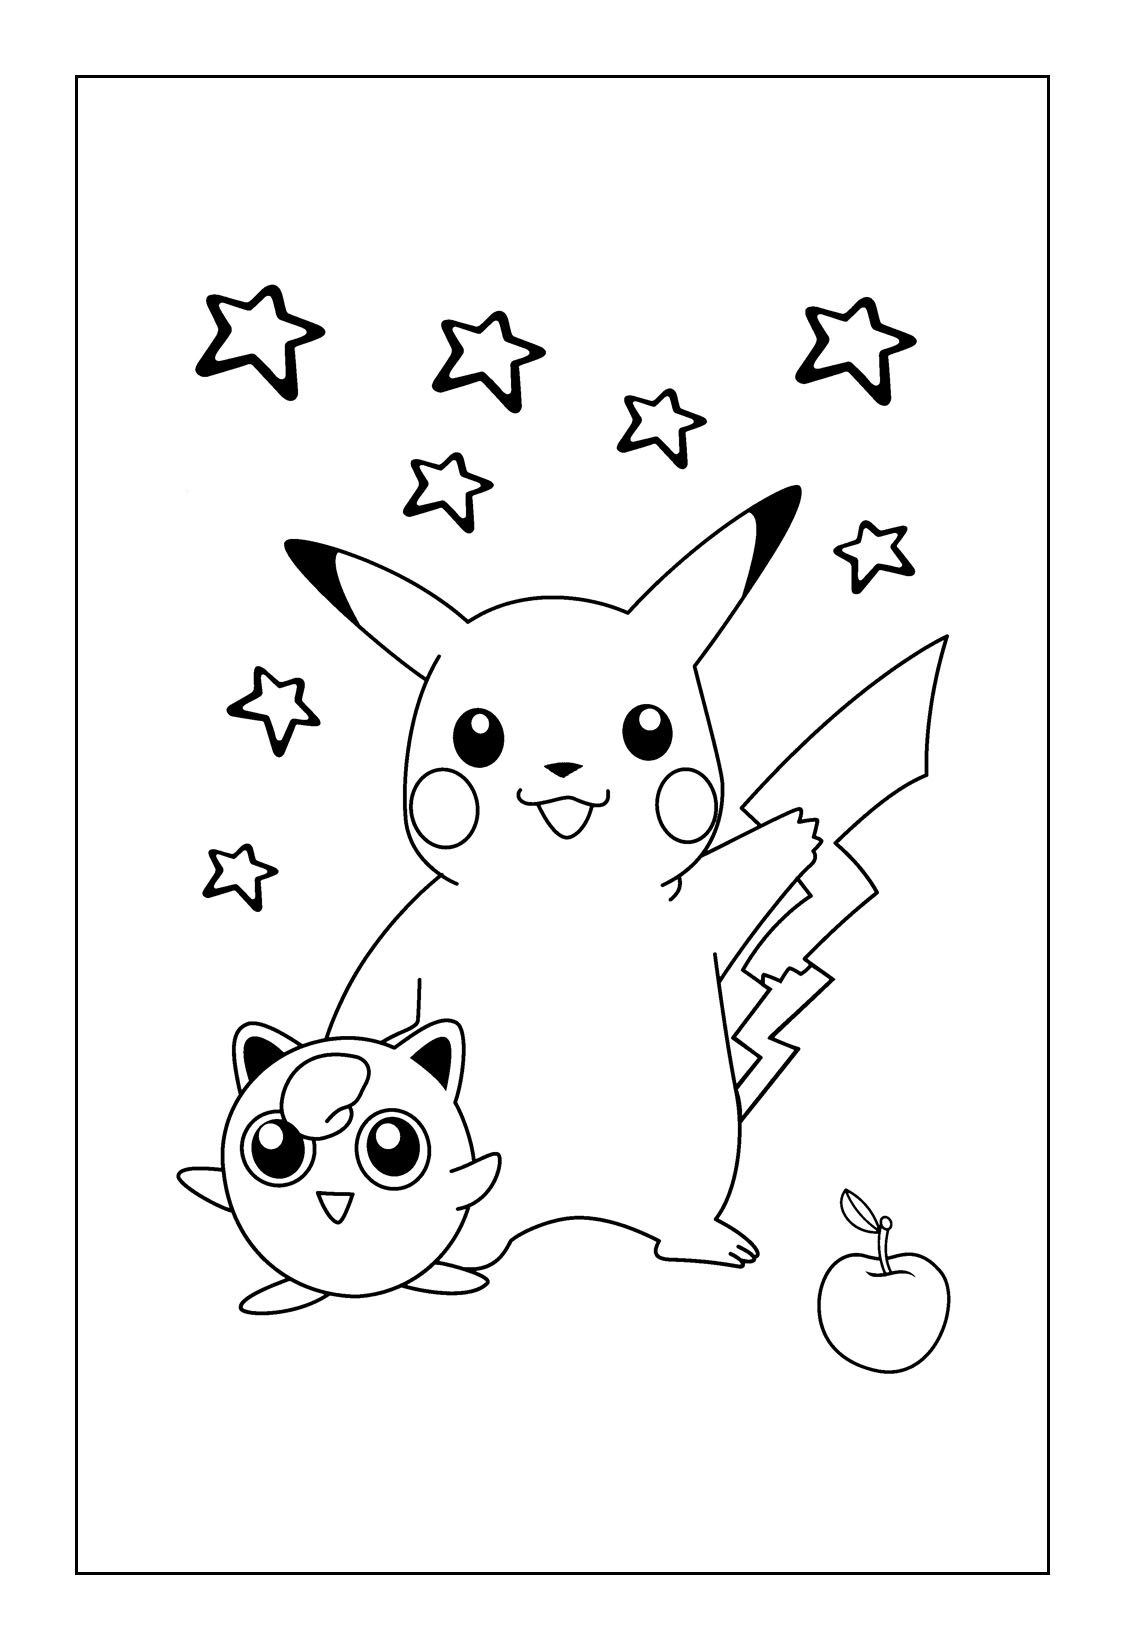 Free Pikachu Coloring Pages Printable